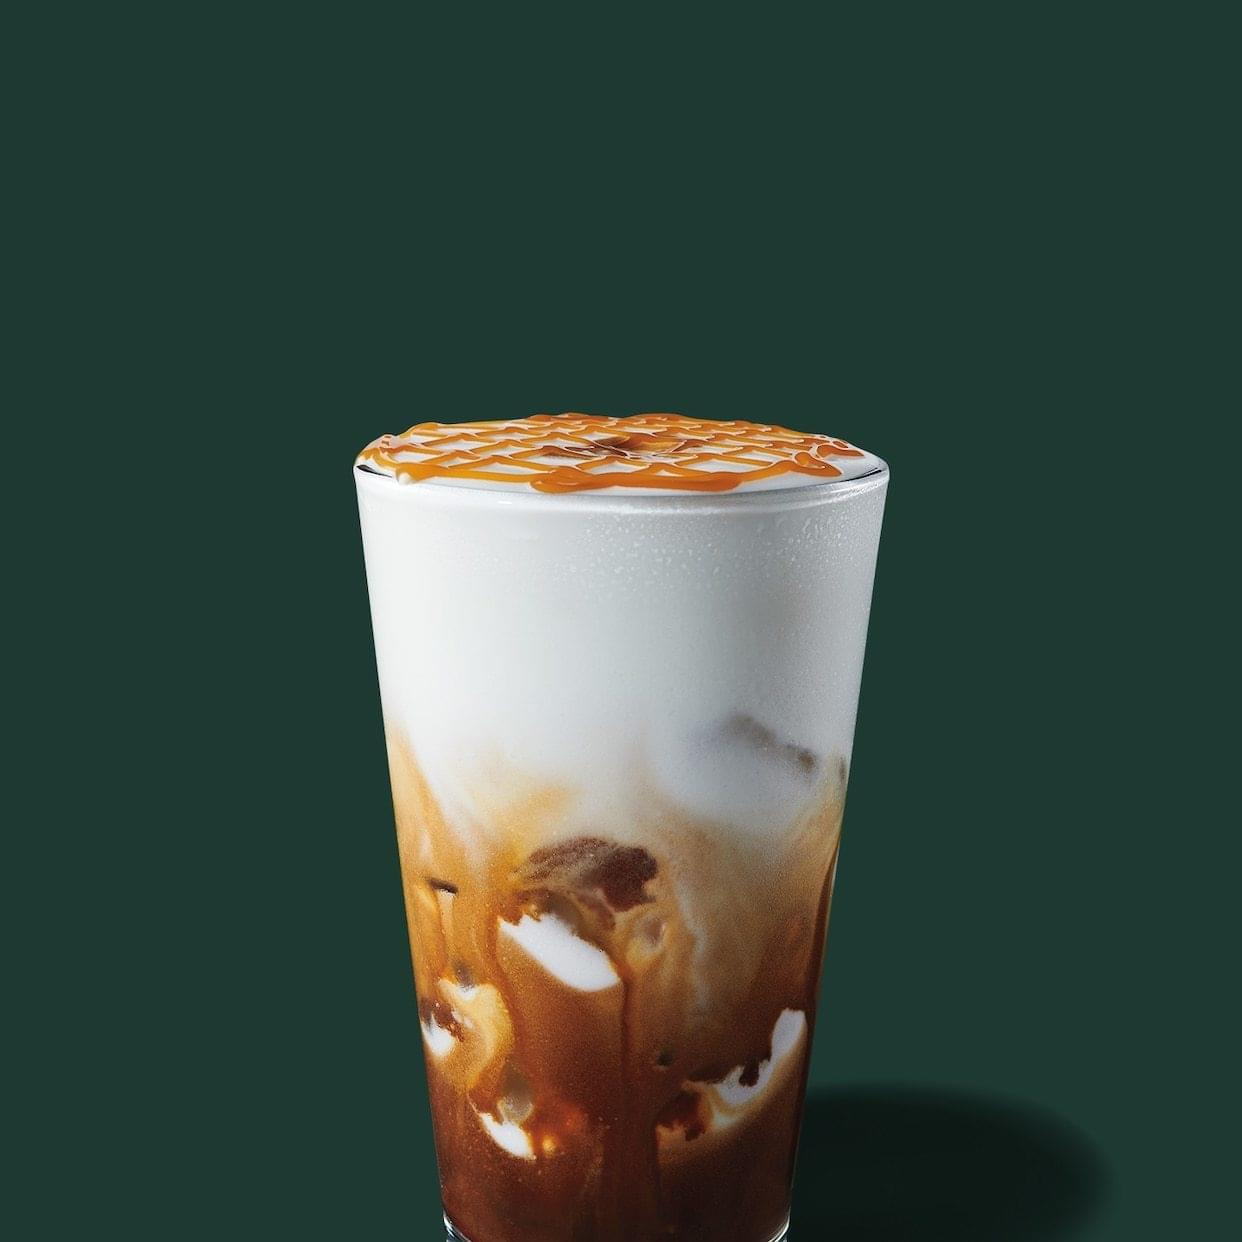 Starbucks Iced Caramel Cloud Macchiato Nutrition Facts